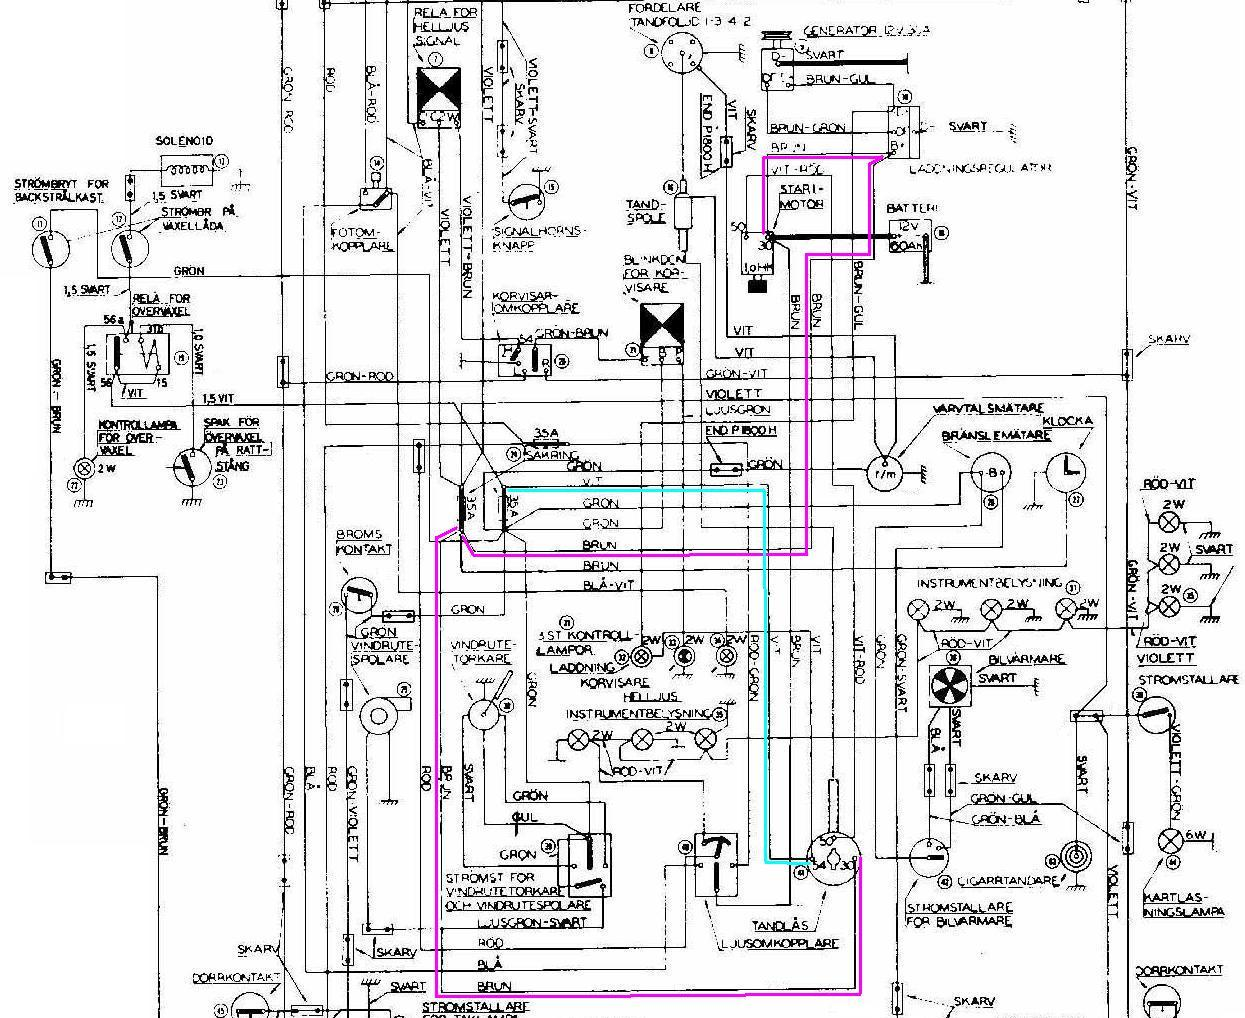 Volvo 630 Wiring Diagram - Wiring Diagram Replace leak-archive -  leak-archive.miramontiseo.it | Volvo 630 Wiring Diagram |  | leak-archive.miramontiseo.it